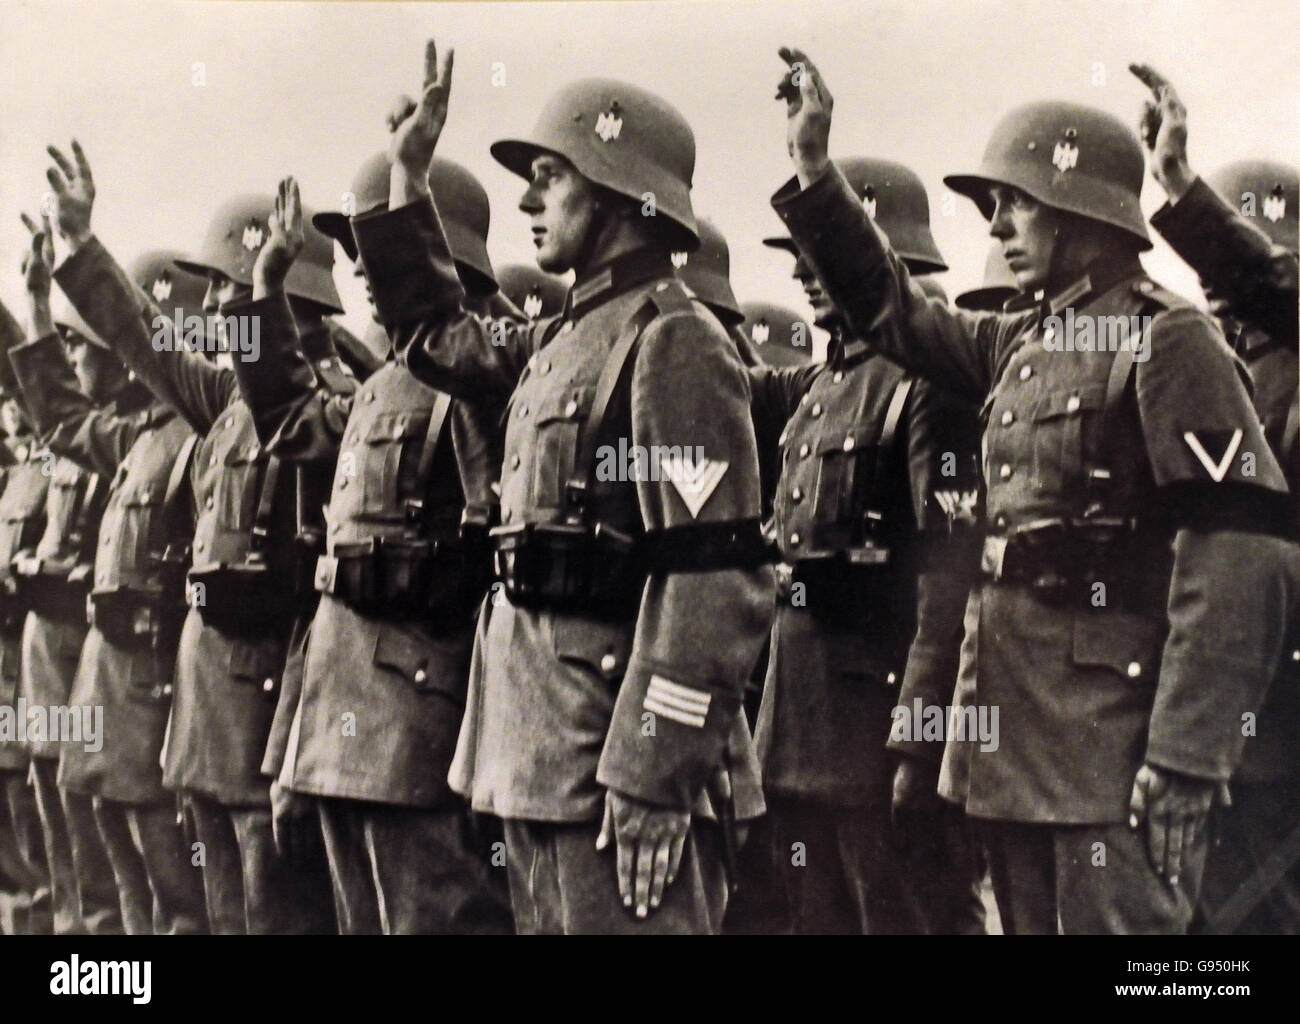 Soldiers swearing in of the regiment General Goring 1 January  1935 Berlin Nazi Germany - Stock Image